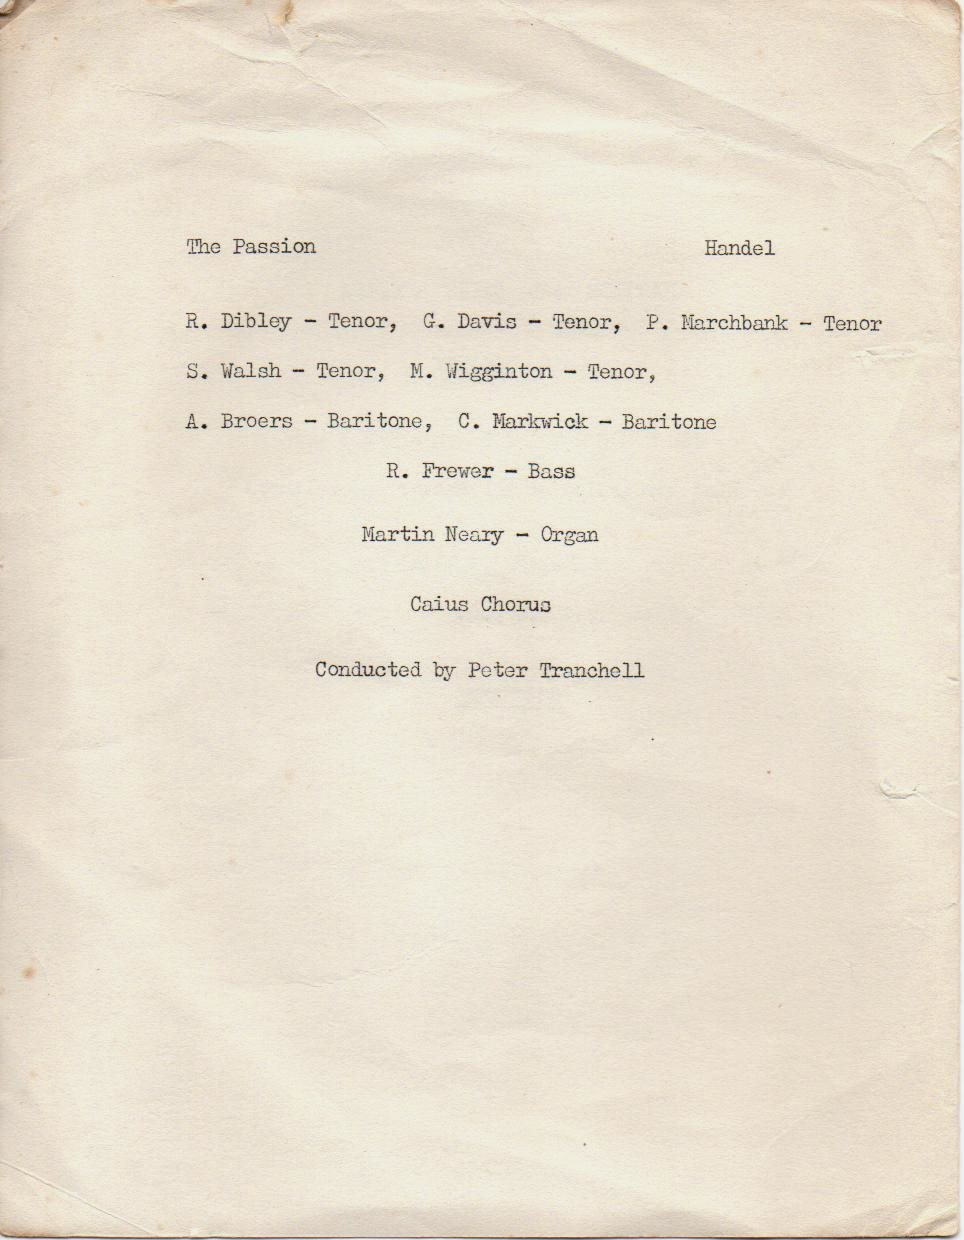 Programme for GONVILLE AND CAIUS COLLEGE LENT TERM CONCERT 1962 page 2